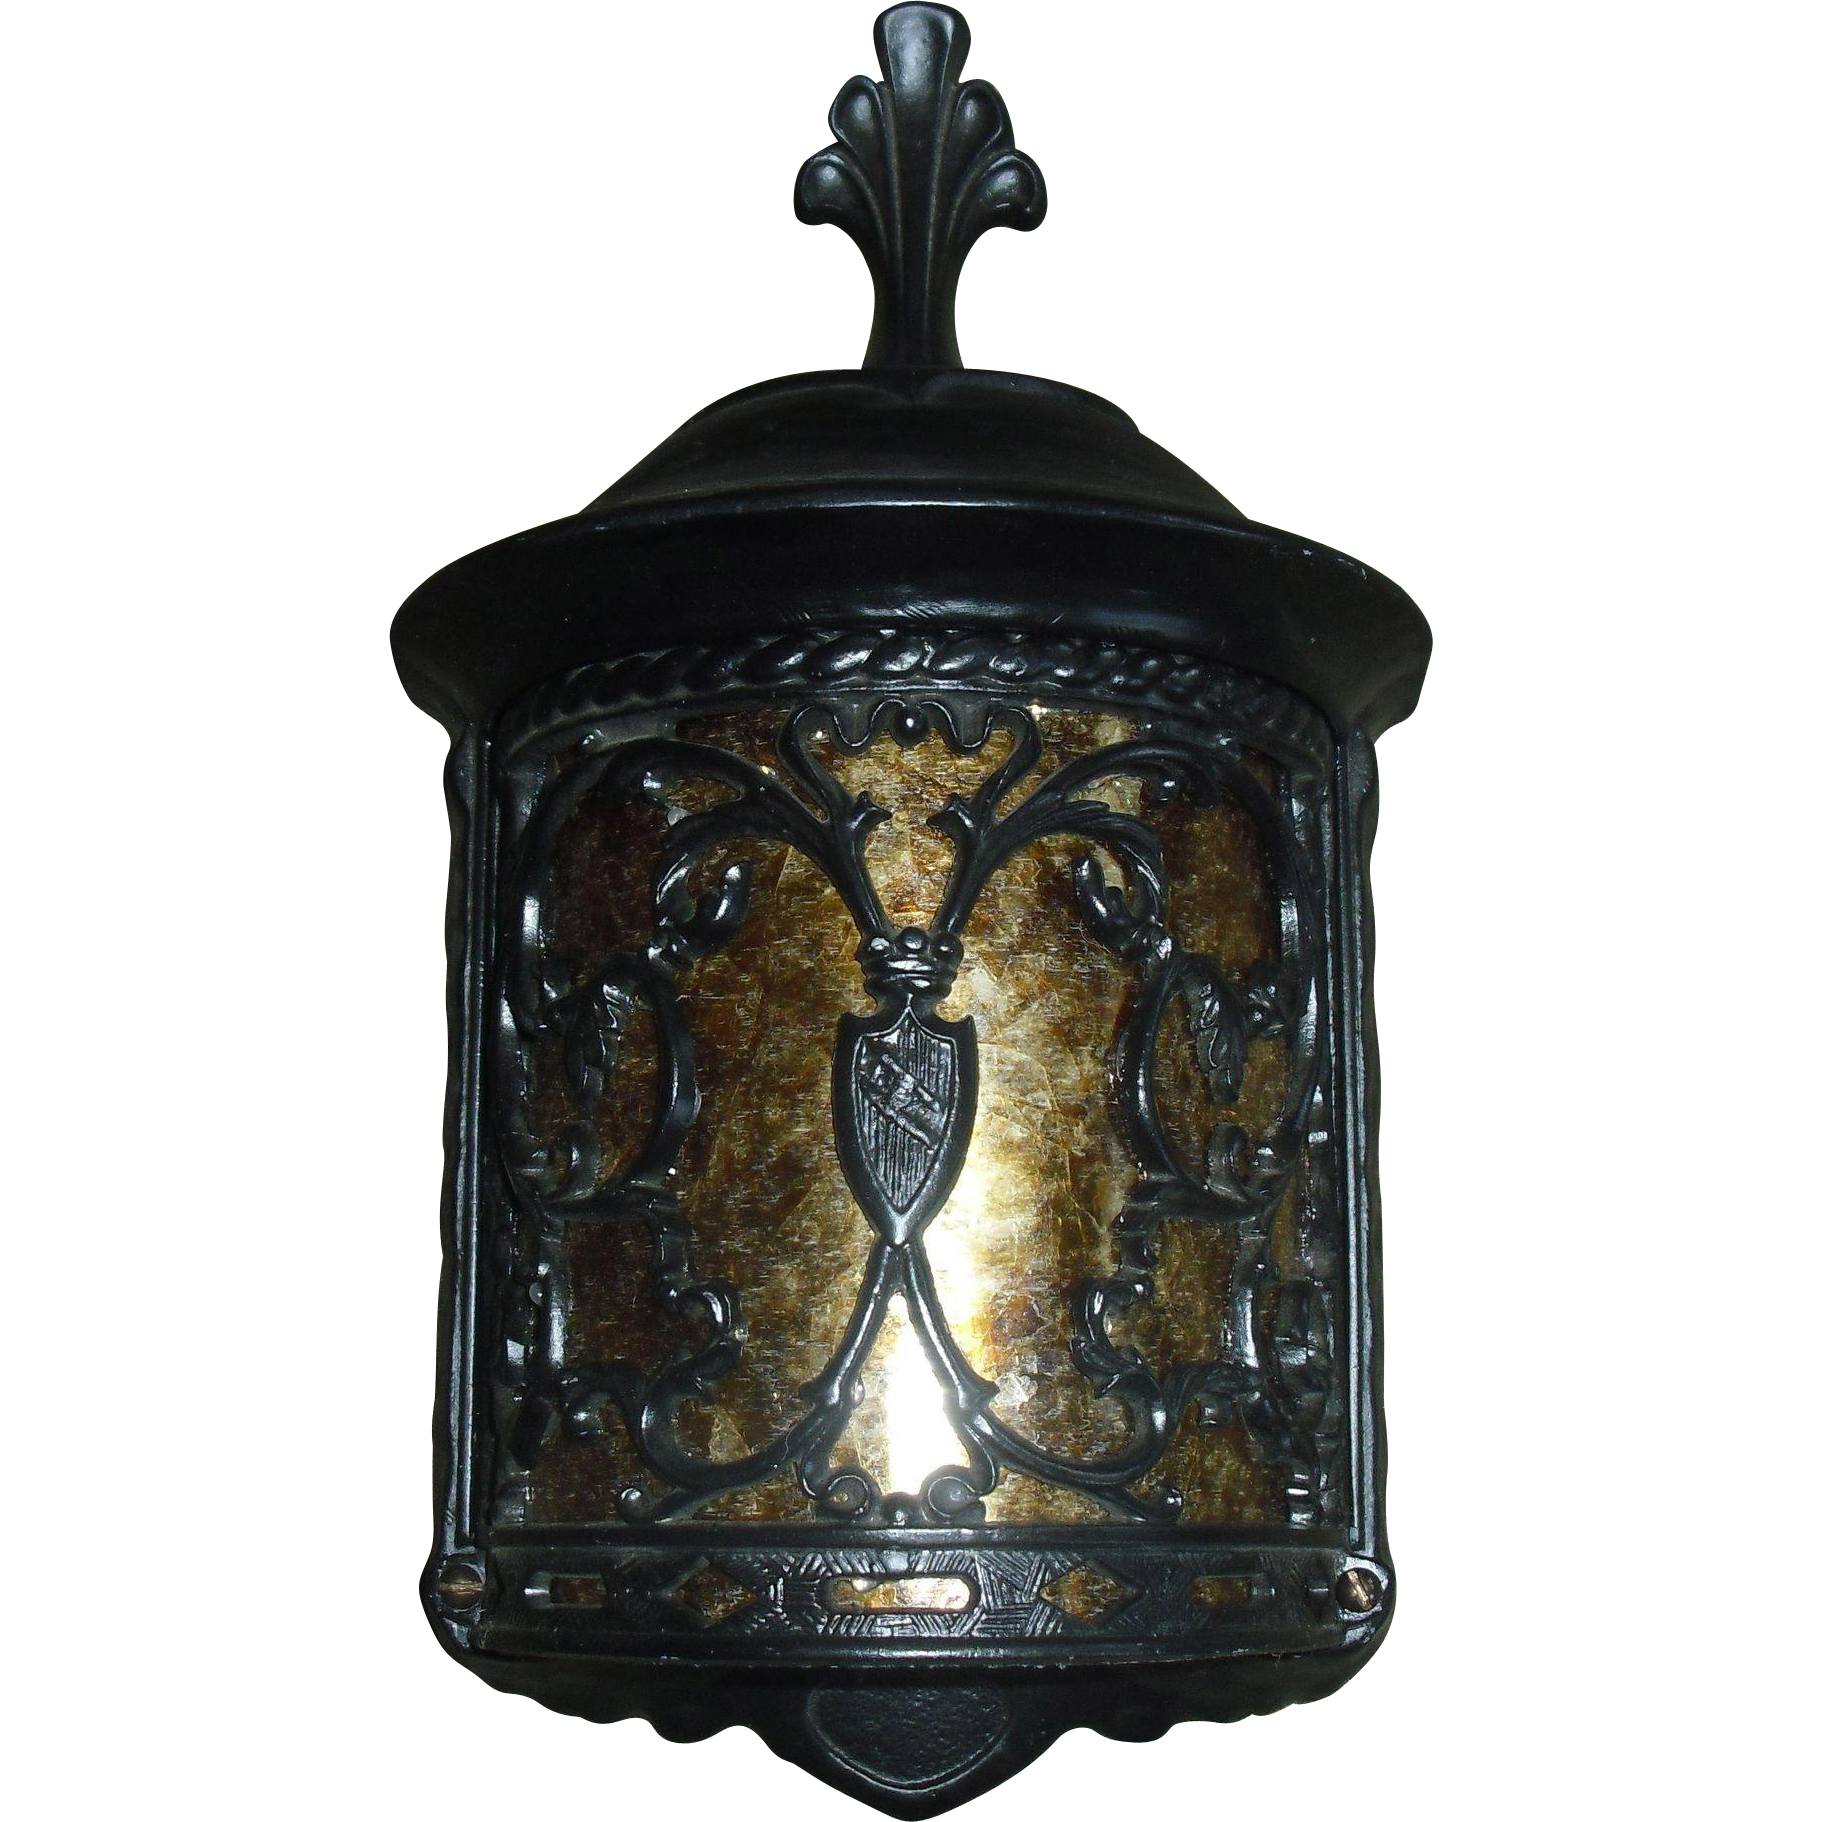 Spanish Revival Porch Light Fixture with Mica Panel - 5 available